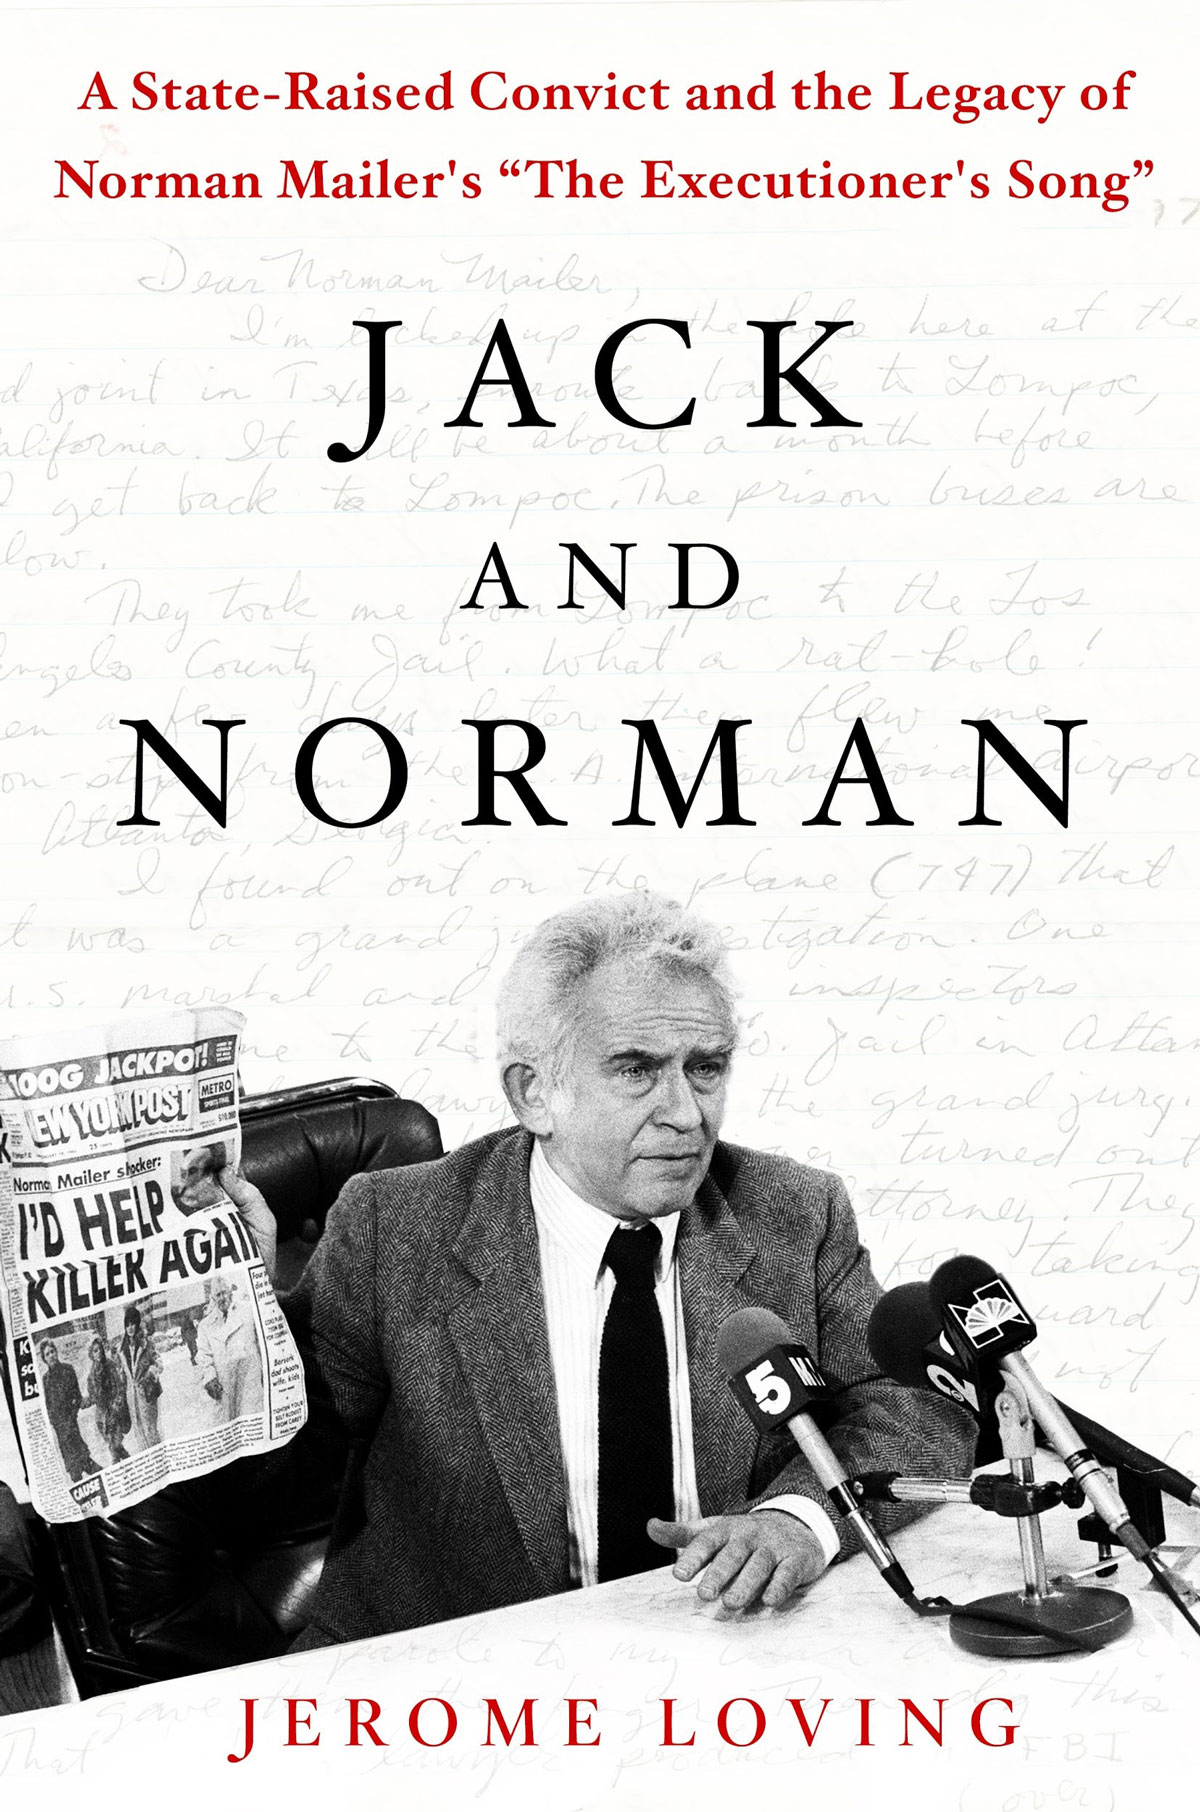 "The Art of American Crime: Q&A with Dr. Jerome Loving on Jack and Norman: A State-Raised Convict and the Legacy of Norman Mailer's ""The Executioner's Song"""